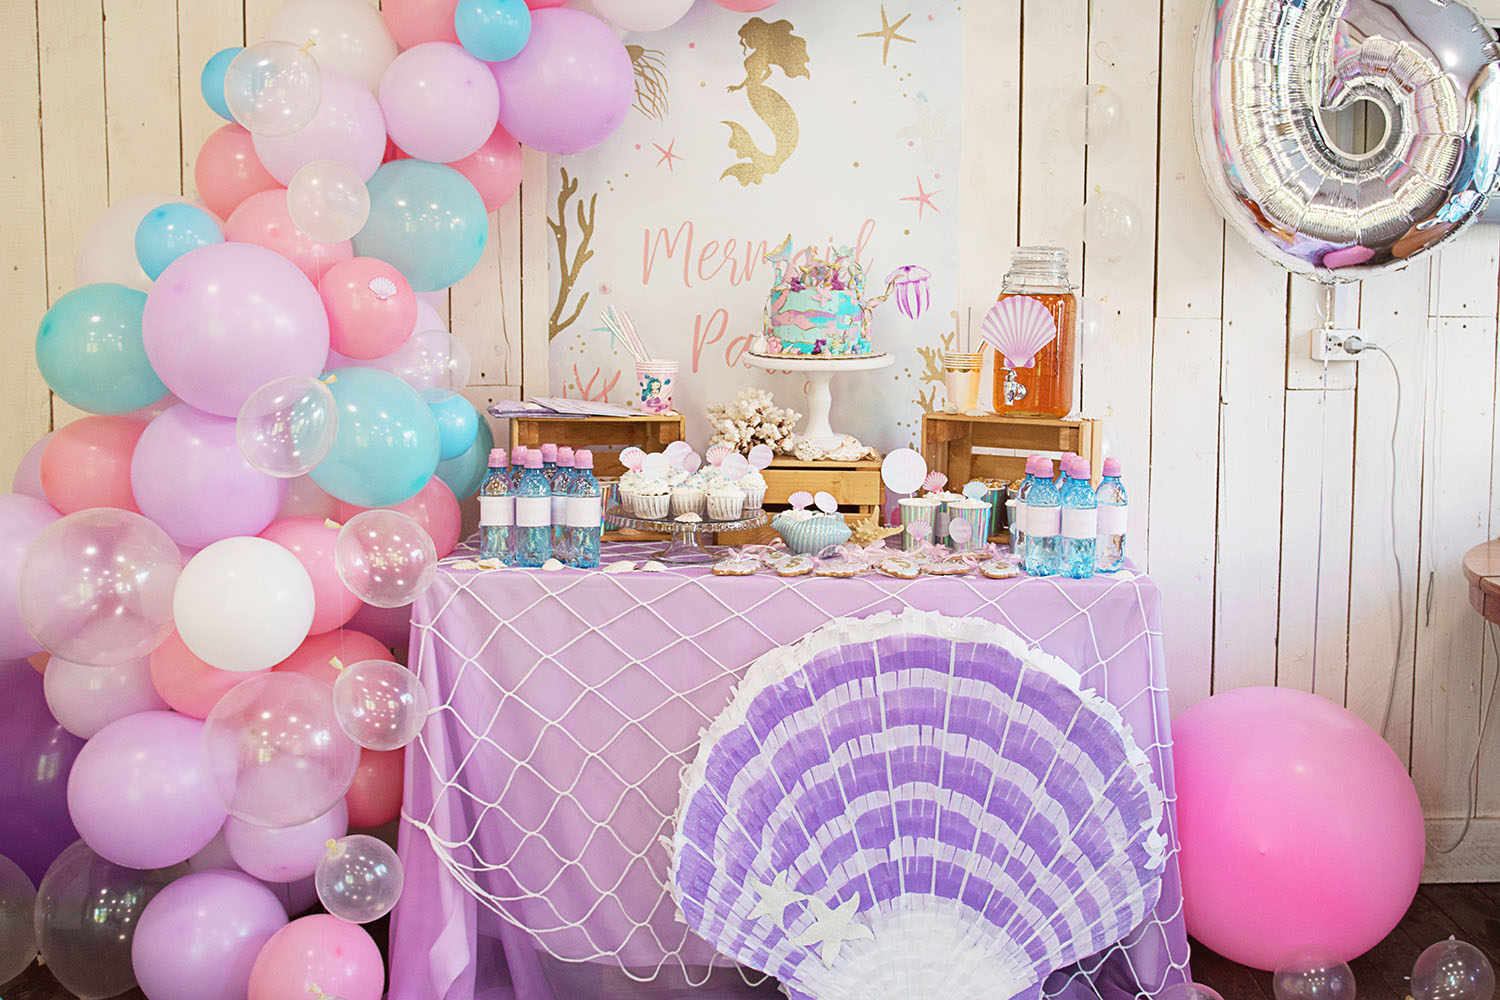 Mermaid bachelorette party dessert table with pastel balloons